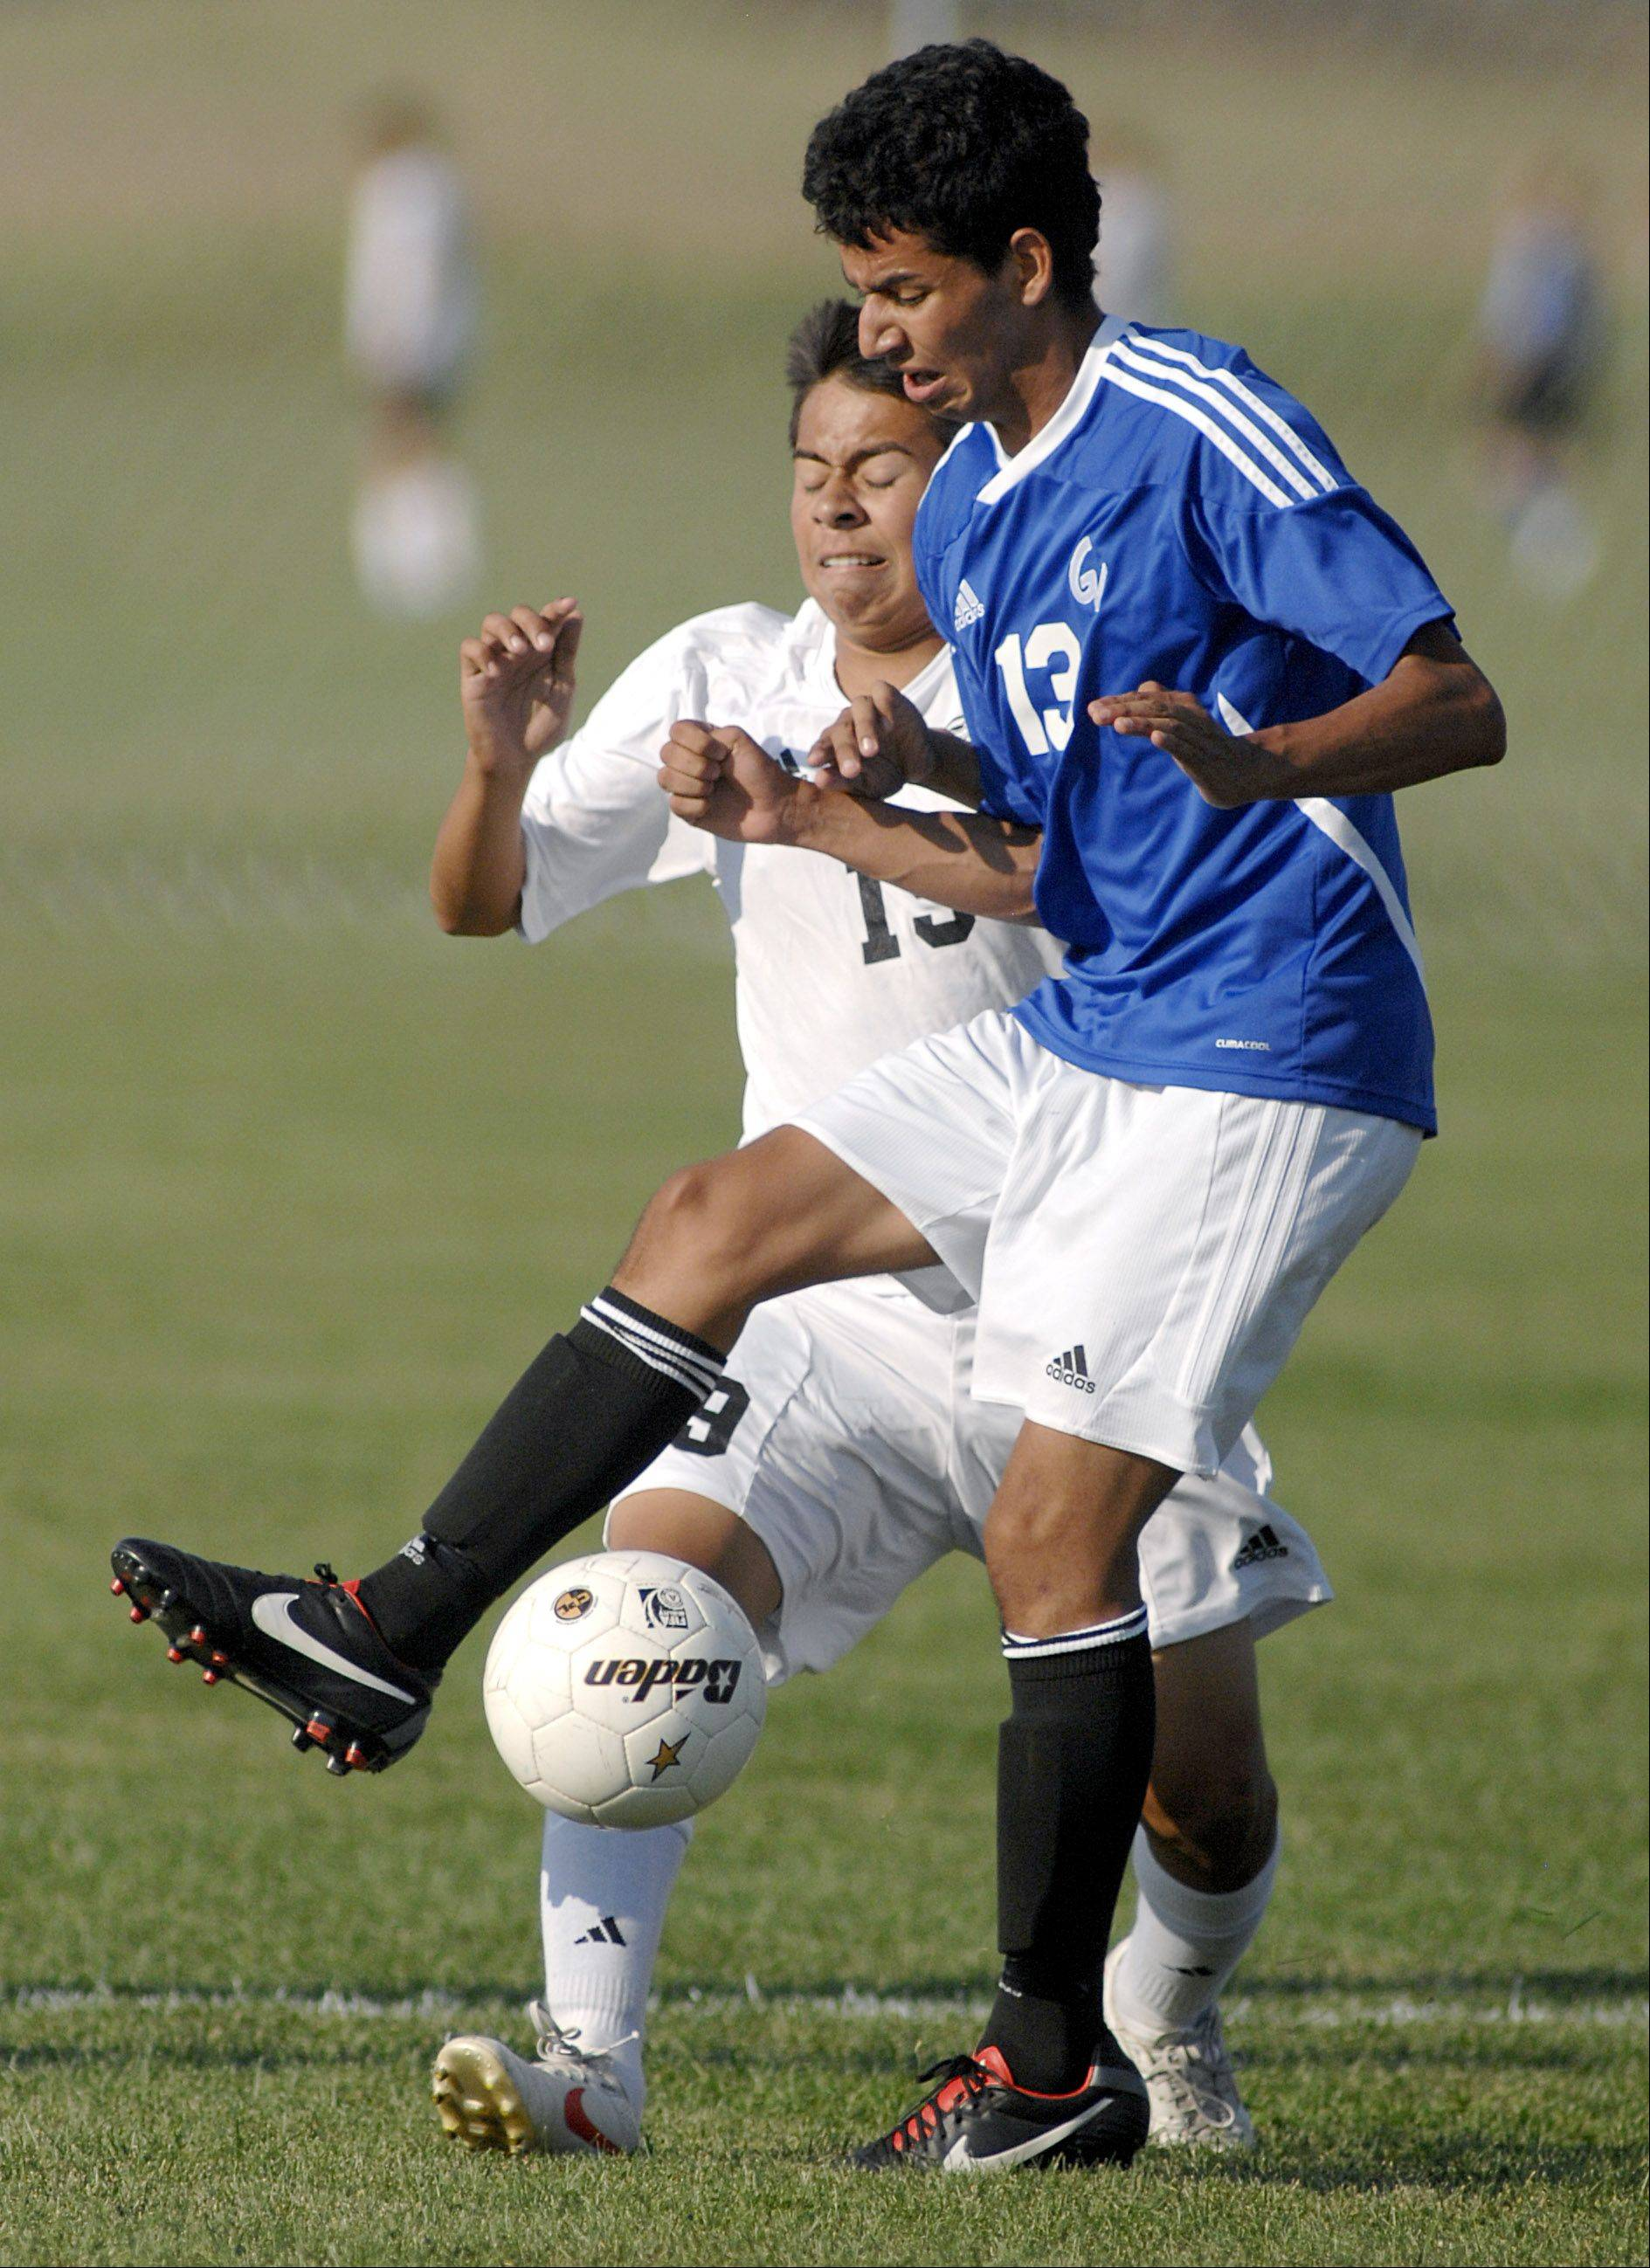 Kaneland's Ivan Bohorquez, left, and Geneva's Valentin Gonzalez fight for the ball in the first half on Thursday, August 30.